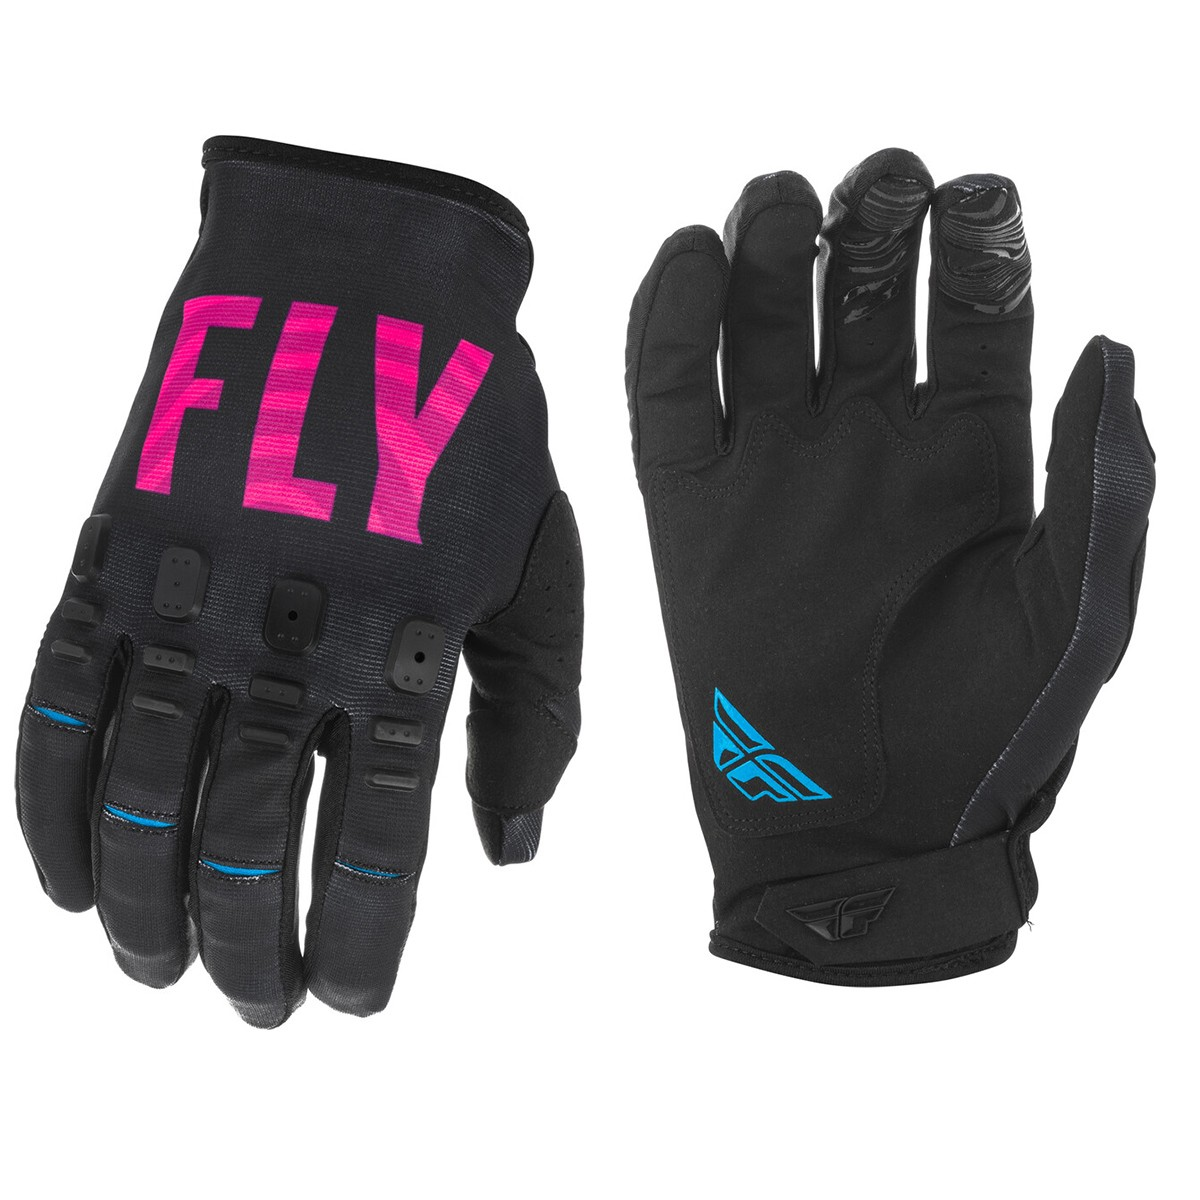 FLY KINETIC SE 2021 GLOVES